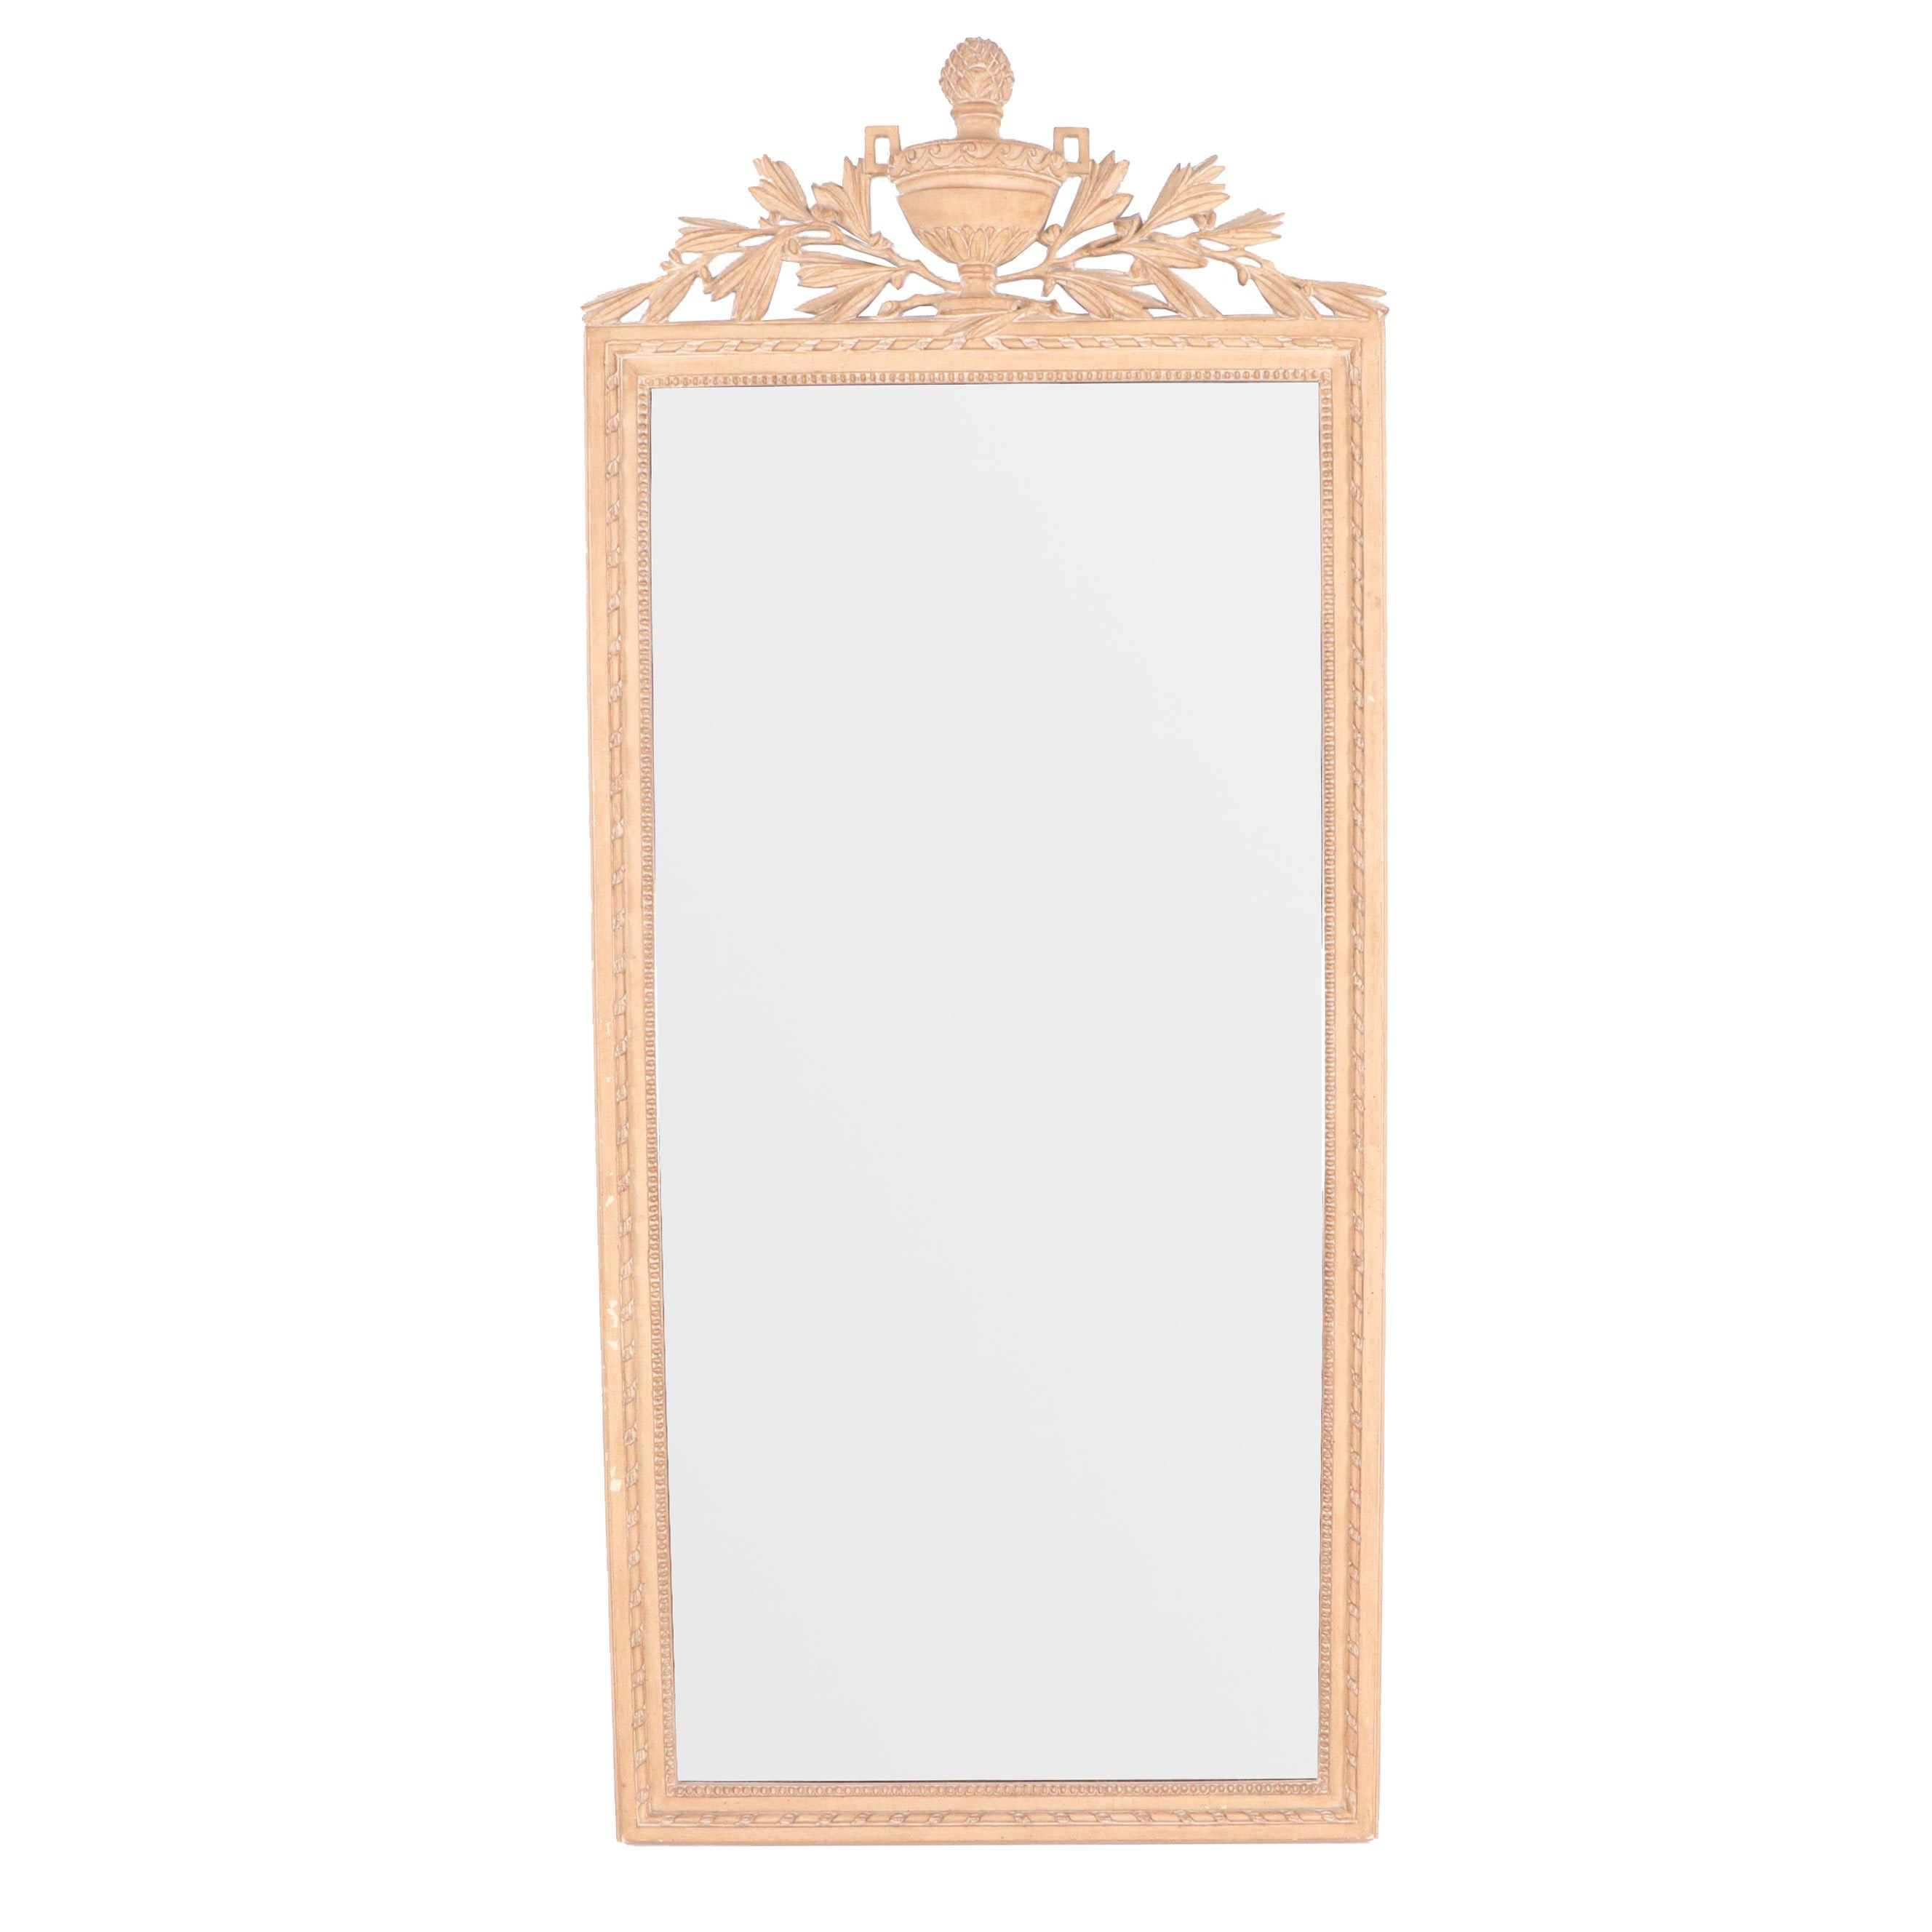 French Provincial Style Full Length Wall Mirror